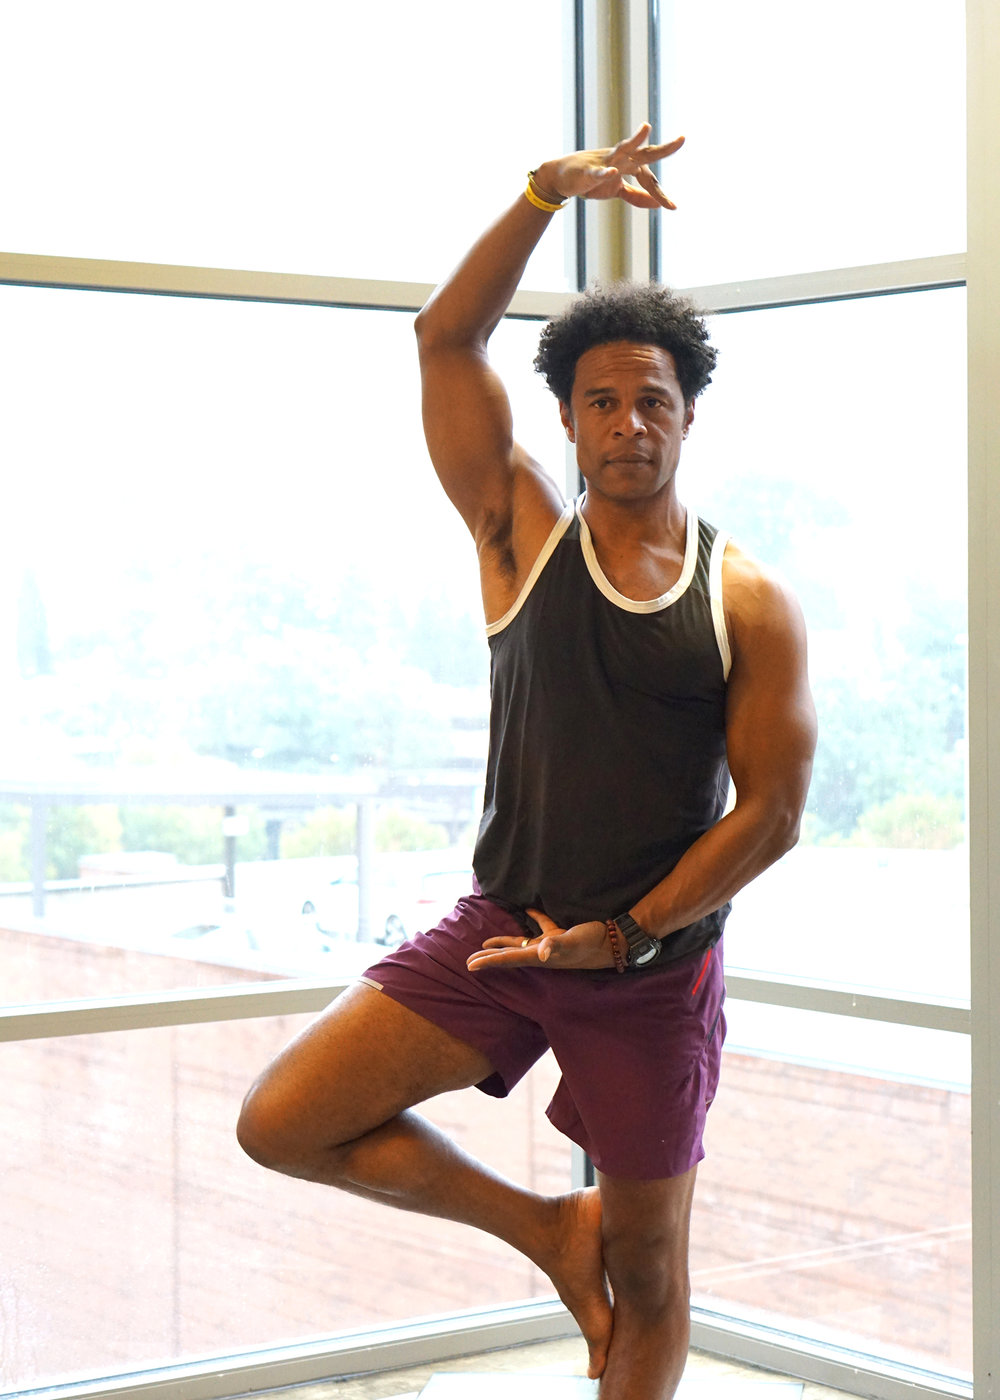 Peace to the People Fitness Yoga Personal Trainer Portraits Charles Gibson Fitness 1.jpg